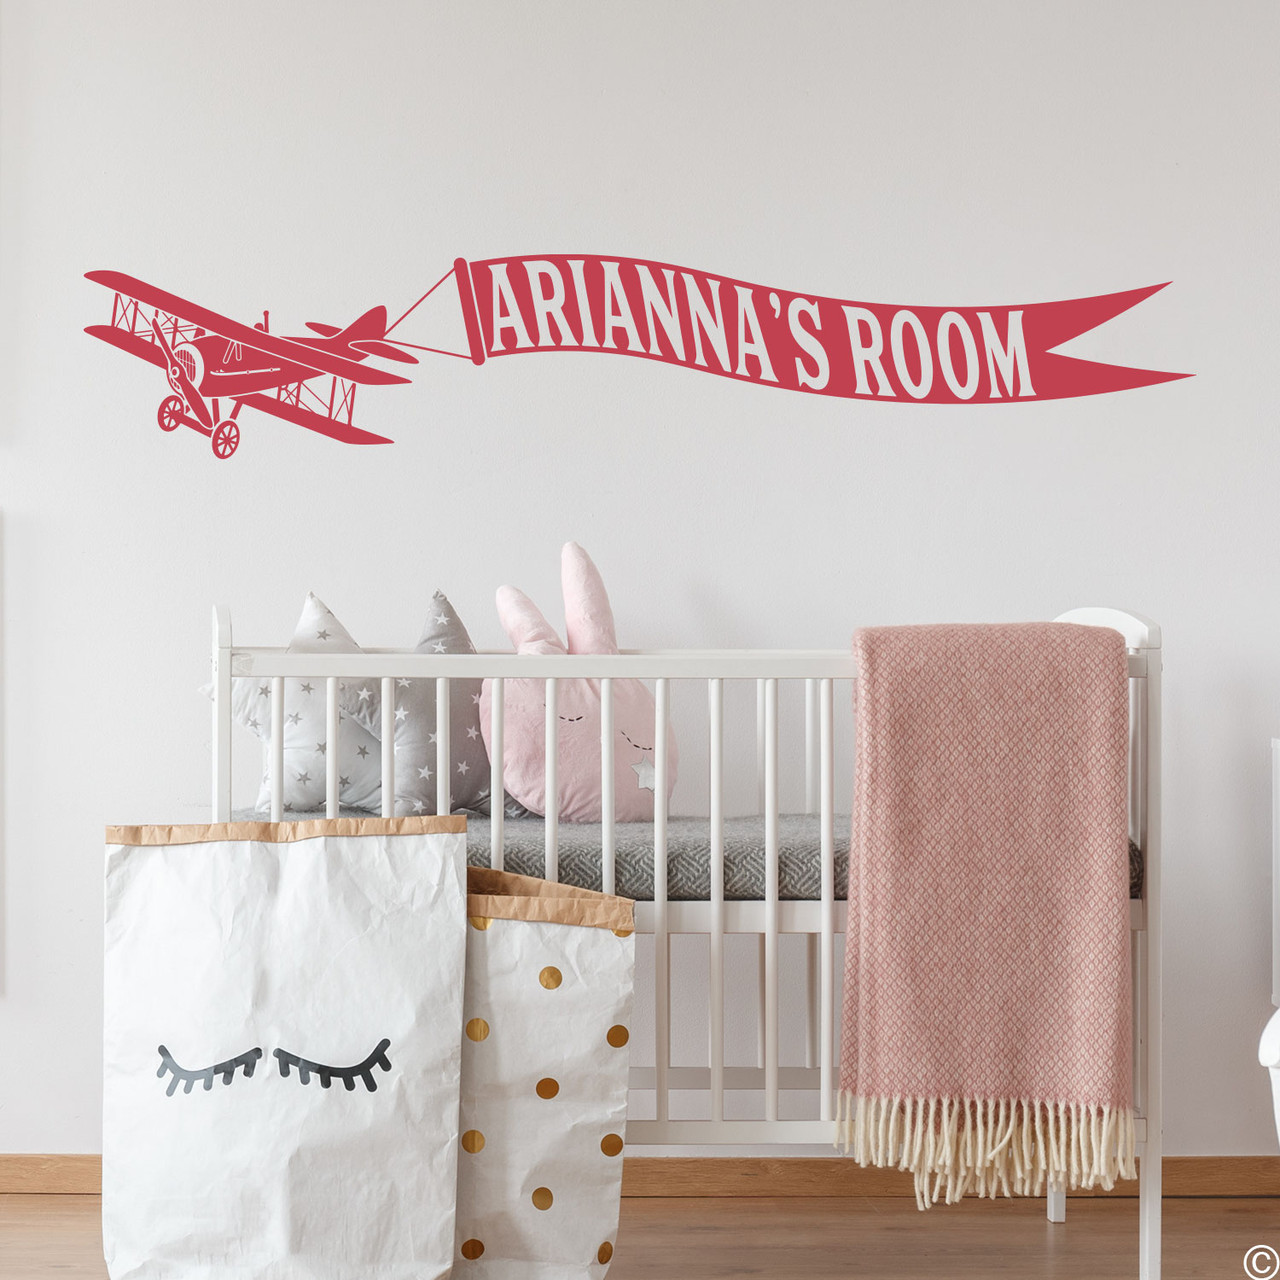 Biplane wall decal with customizable name banner on a nursery room wall in dahlia red vinyl.